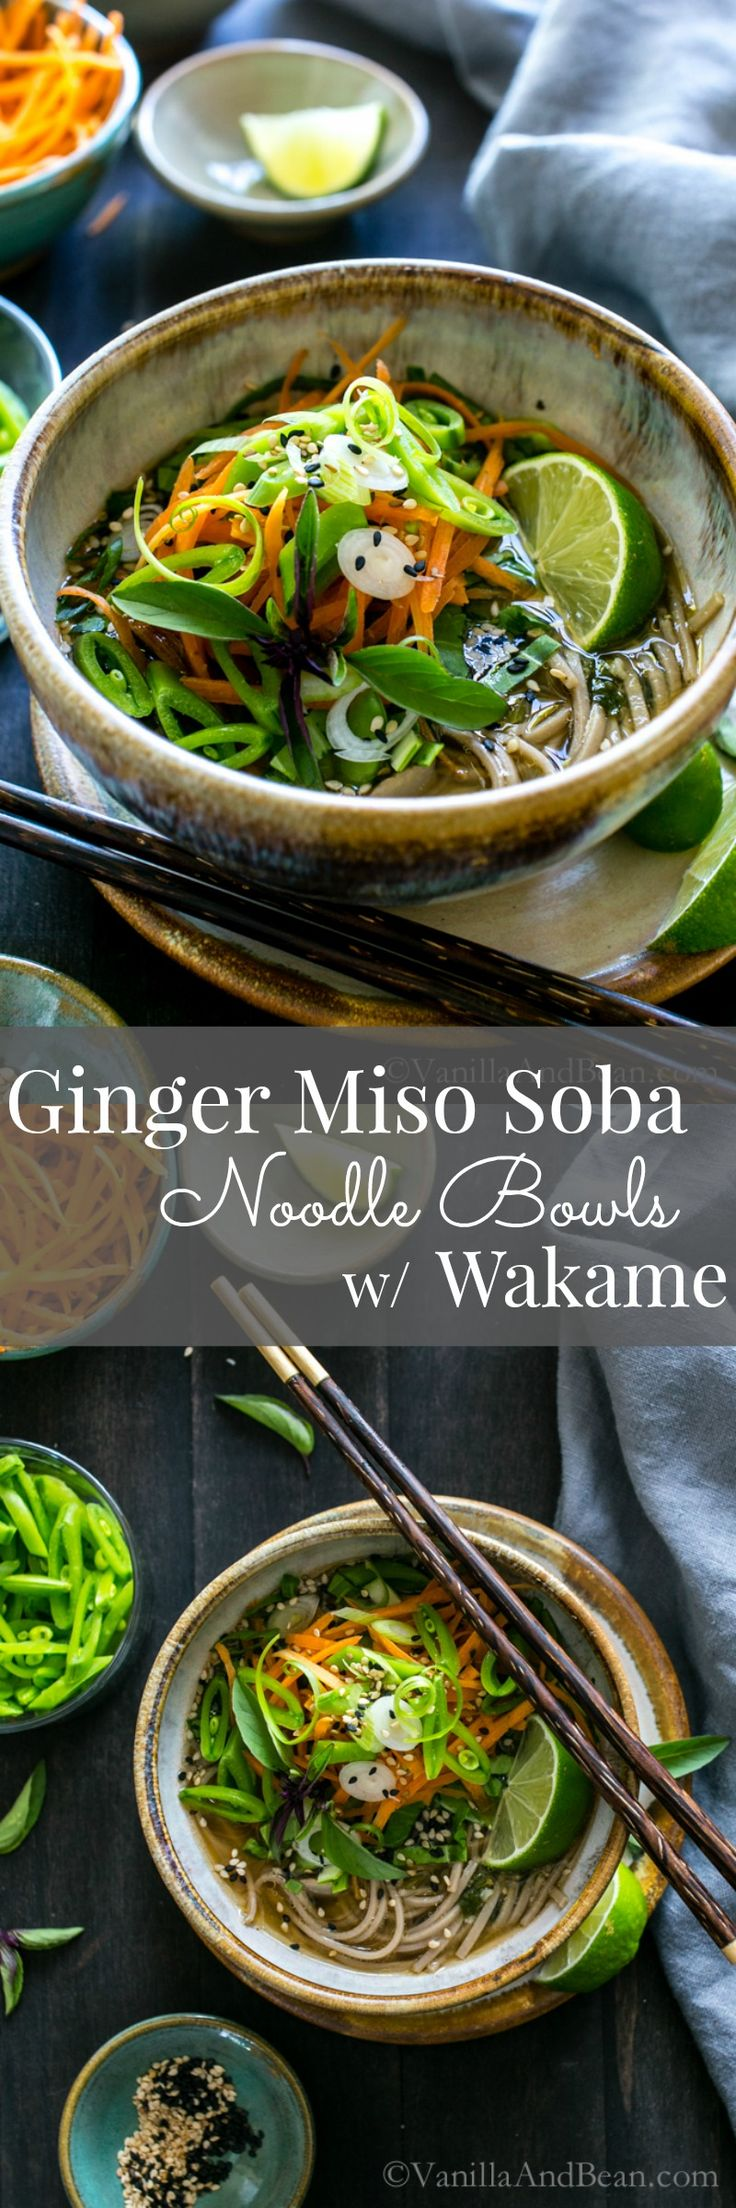 Warming and cozy, Ginger Miso Soba Noodle Bowls with Wakame are so comforting and can be adapted by changing the veggies with the seasons. Vegan + GF